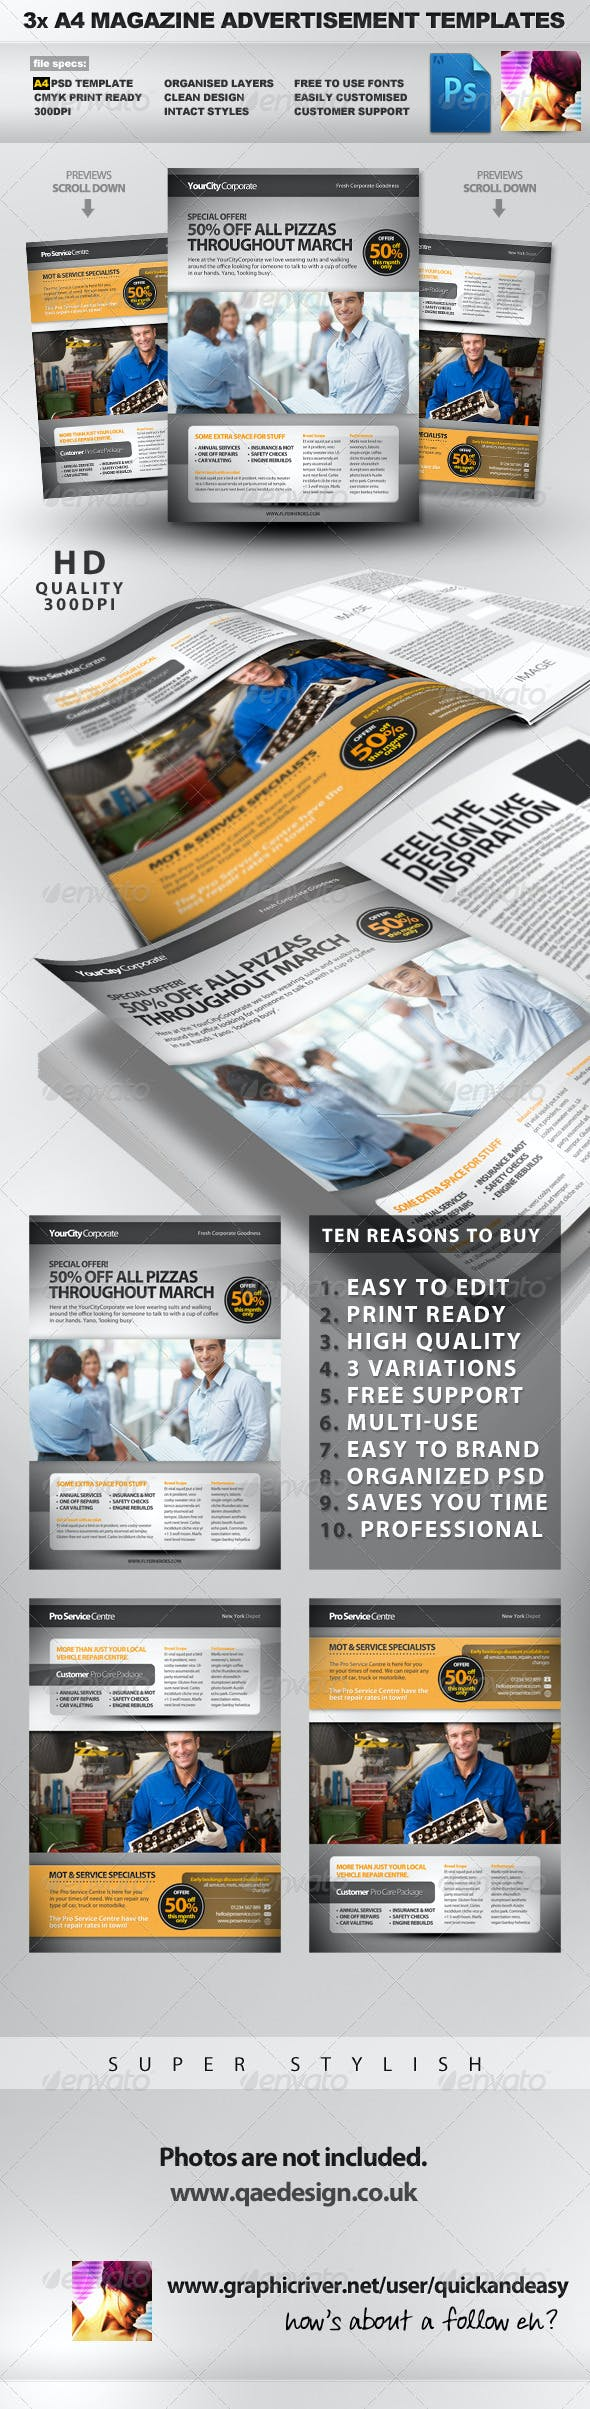 pro services a4 magazine advertisement templates 2 by quickandeasy